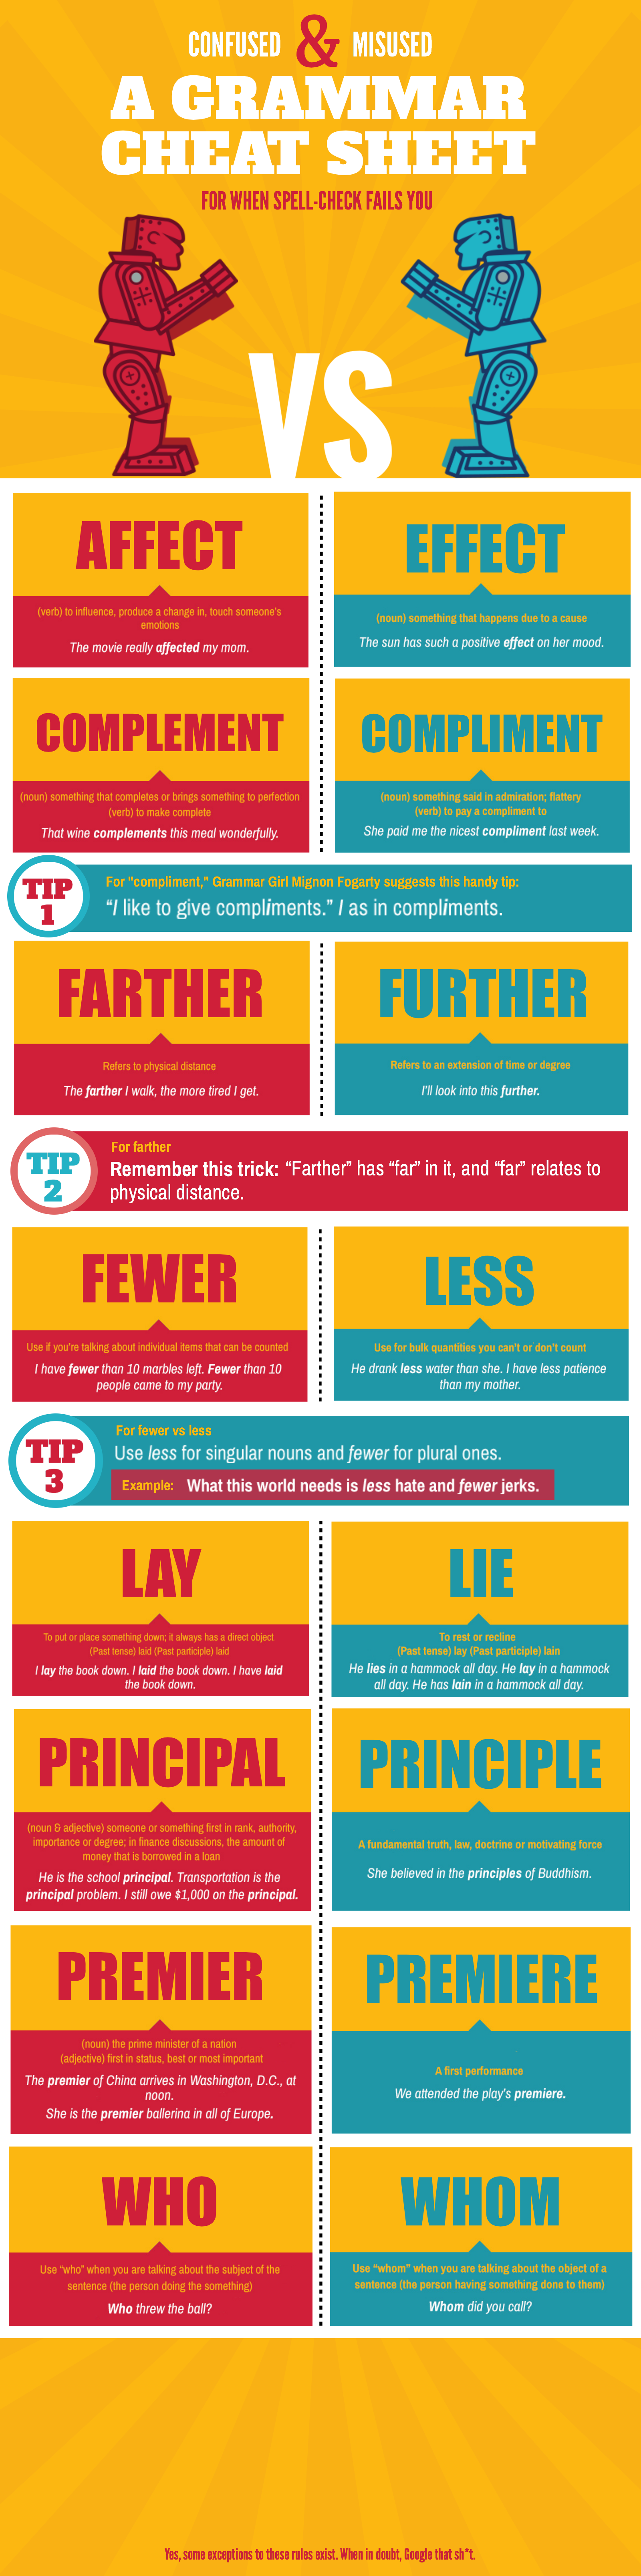 Infographic - Confused & Misused: A Grammar Cheat Sheet